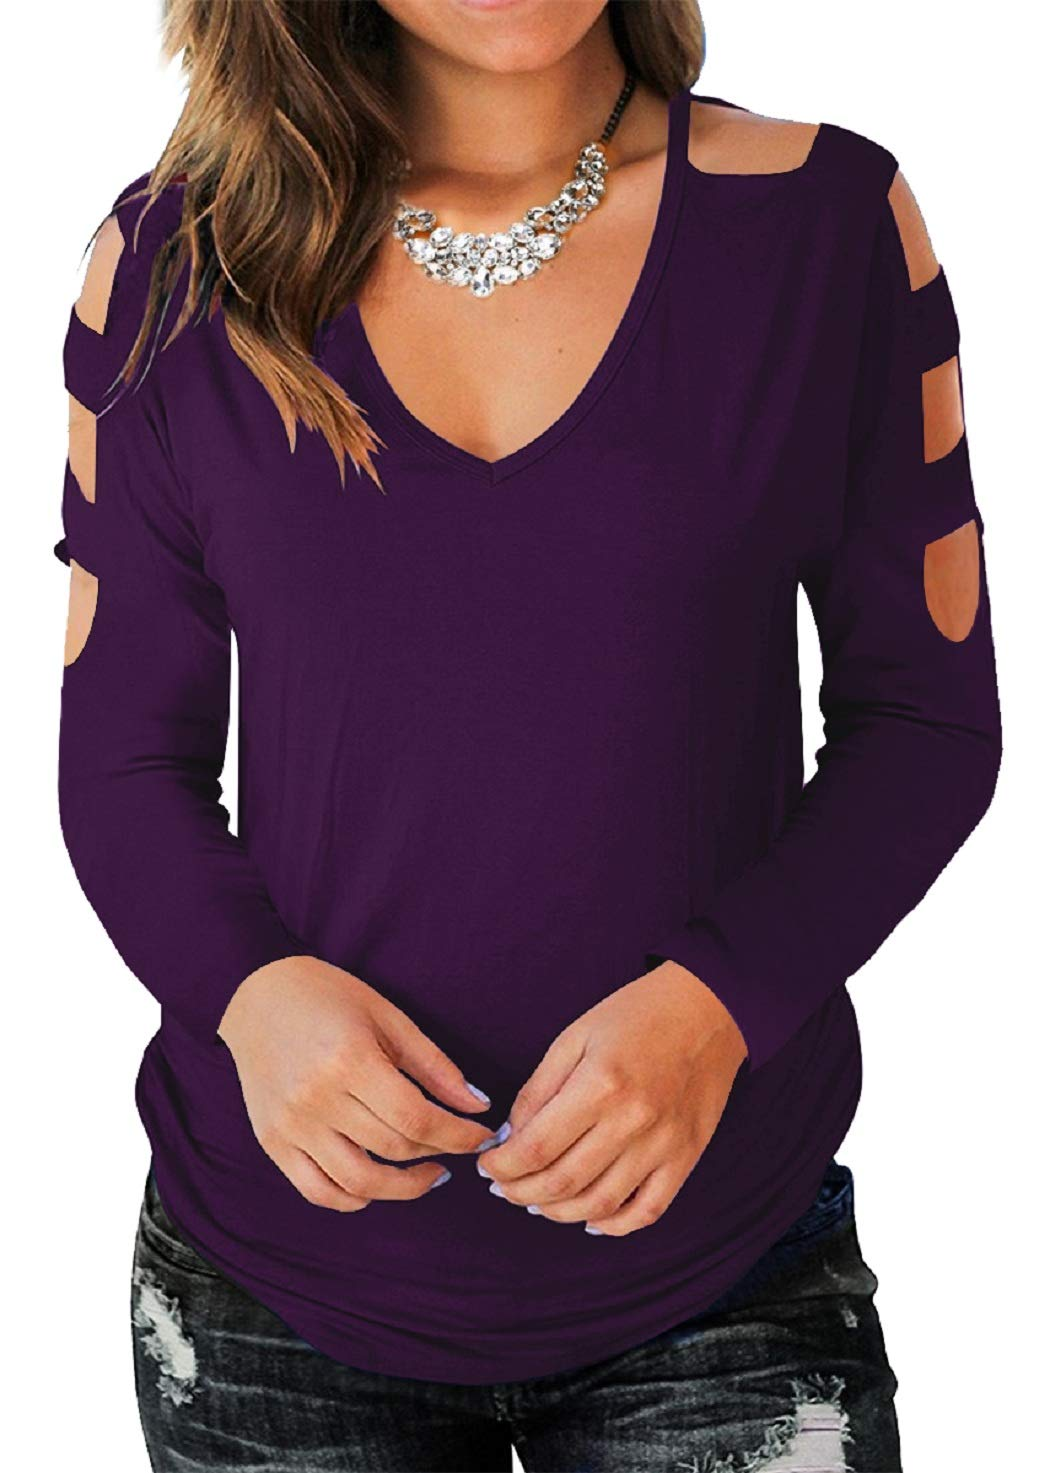 Eanklosco Women's Long Sleeve V Neck Cold Shoulder Cut Out T Shirts Casual Tunic Tops (M, Purple)